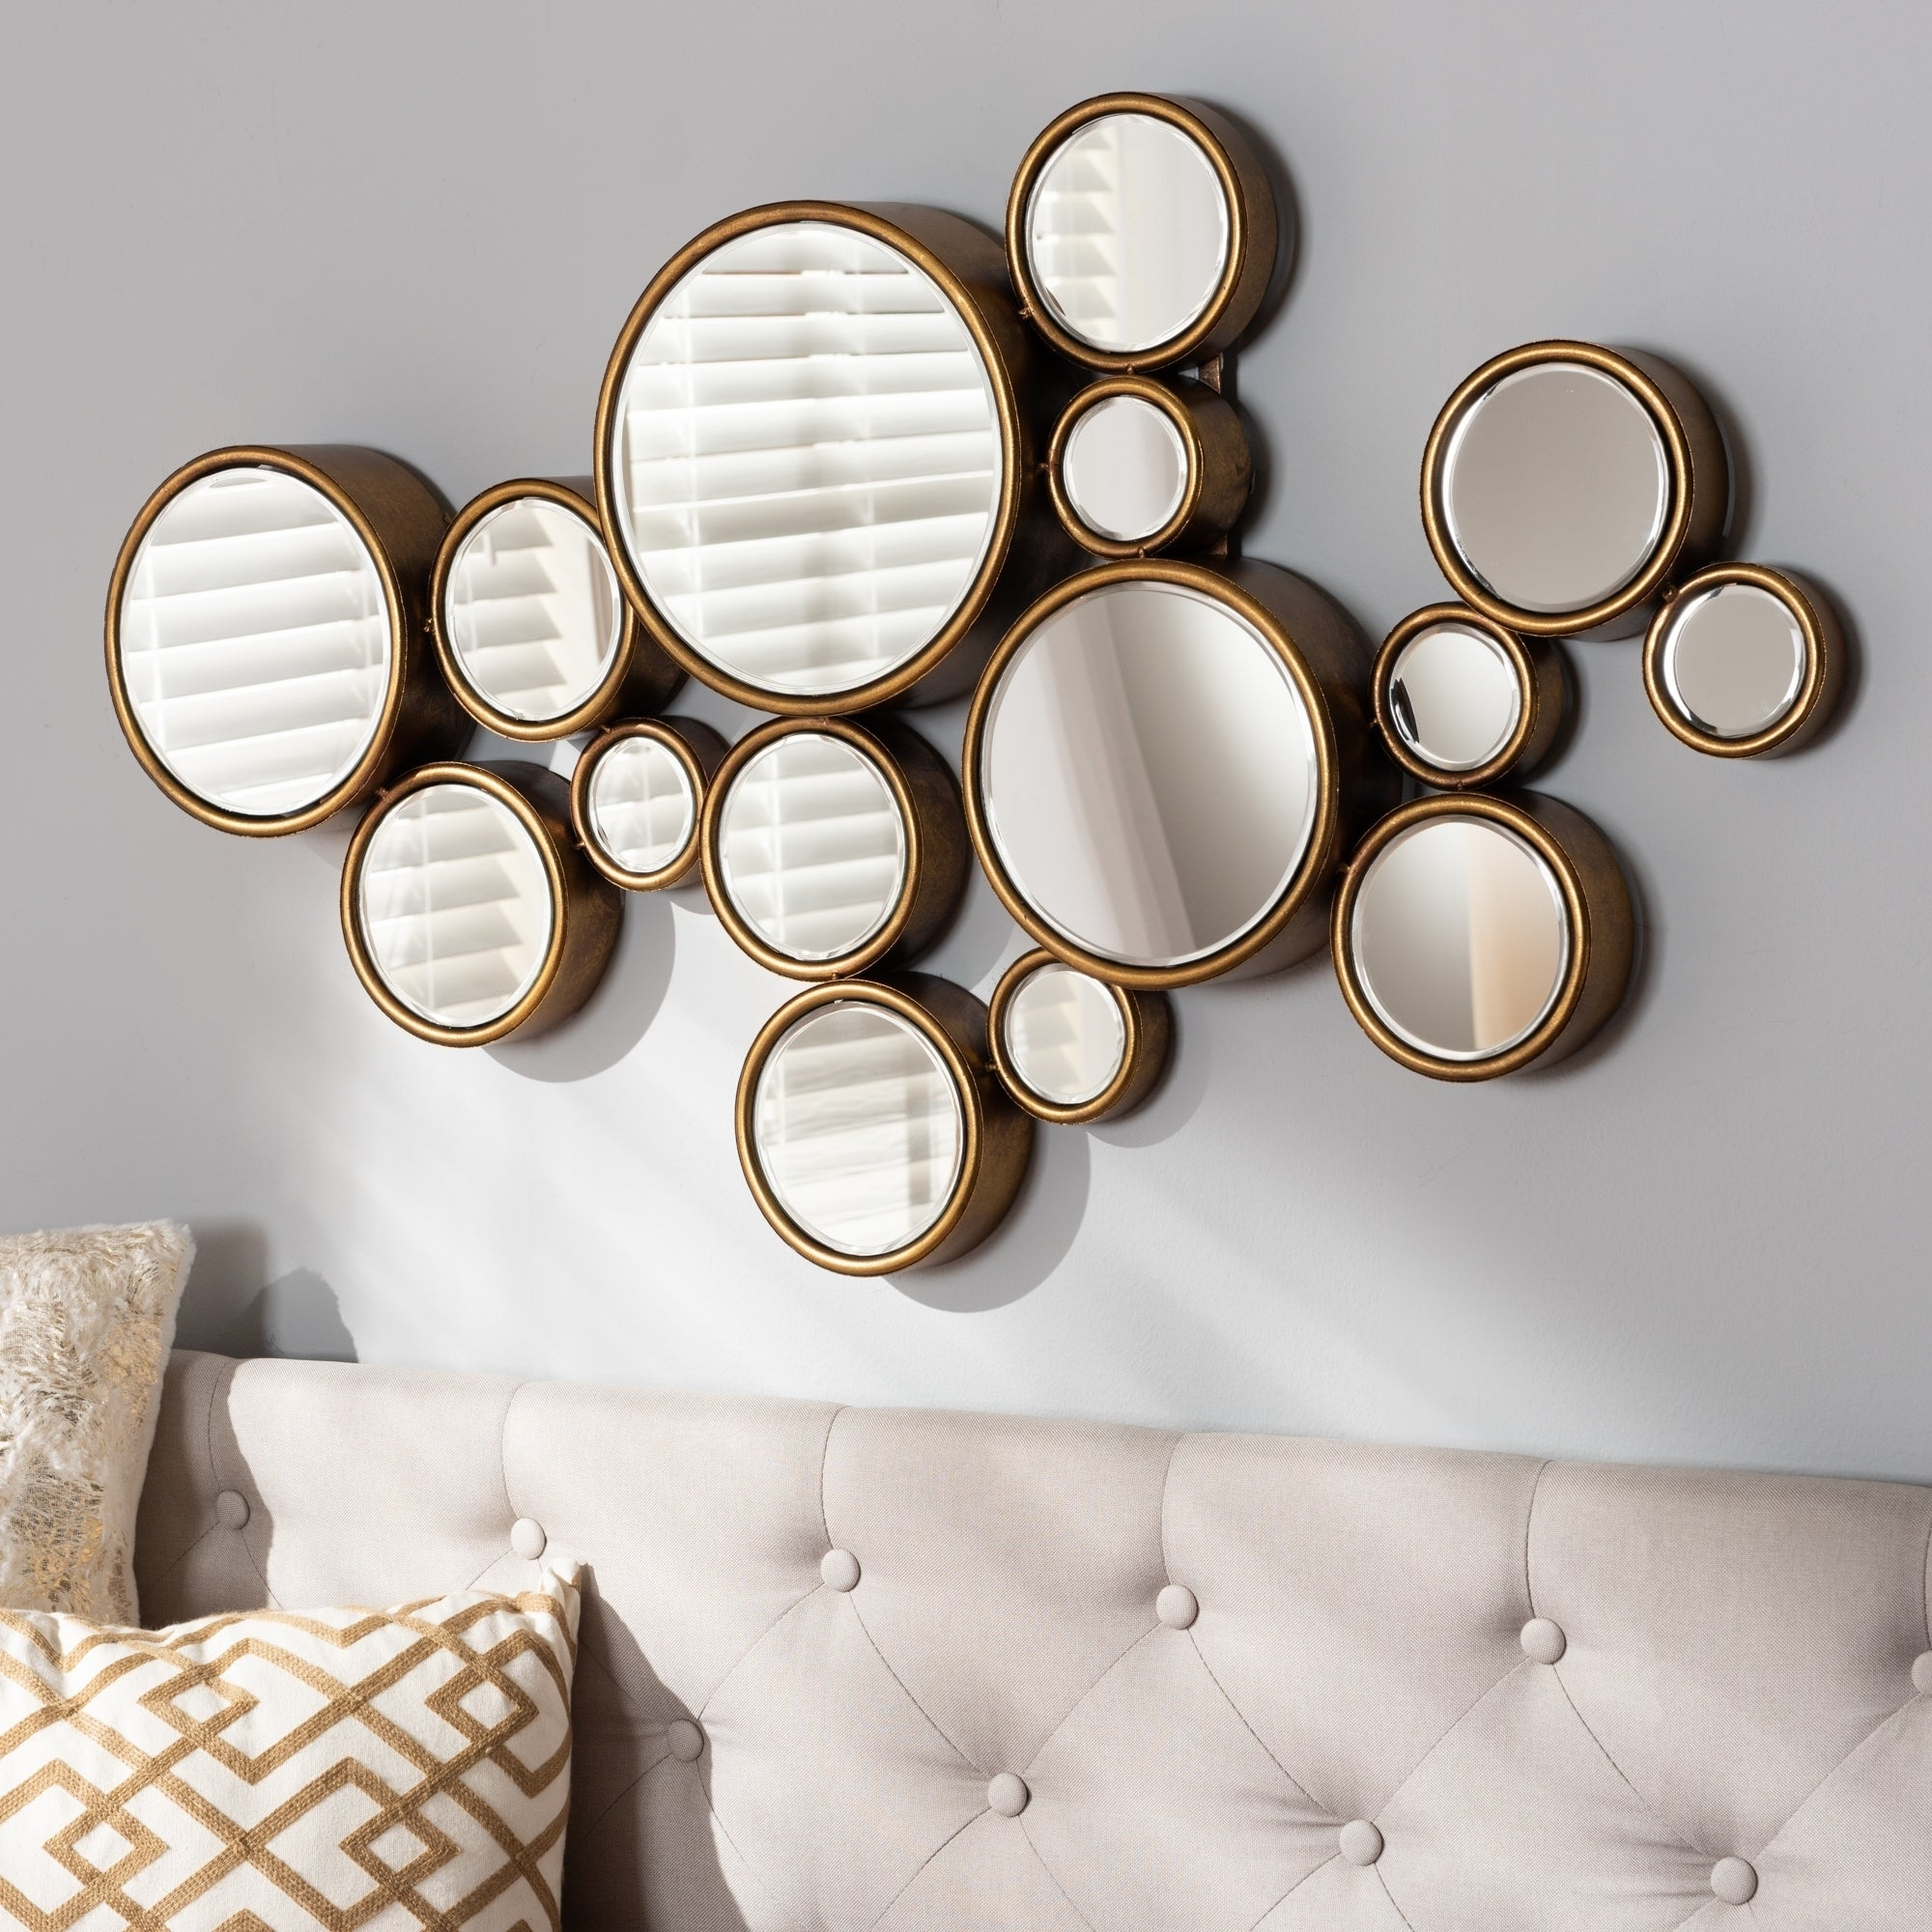 Contemporary Antique Gold Bubble Wall Mirrorbaxton Studio – Antique Gold Inside Famous Bubble Wall Mirrors (View 8 of 20)